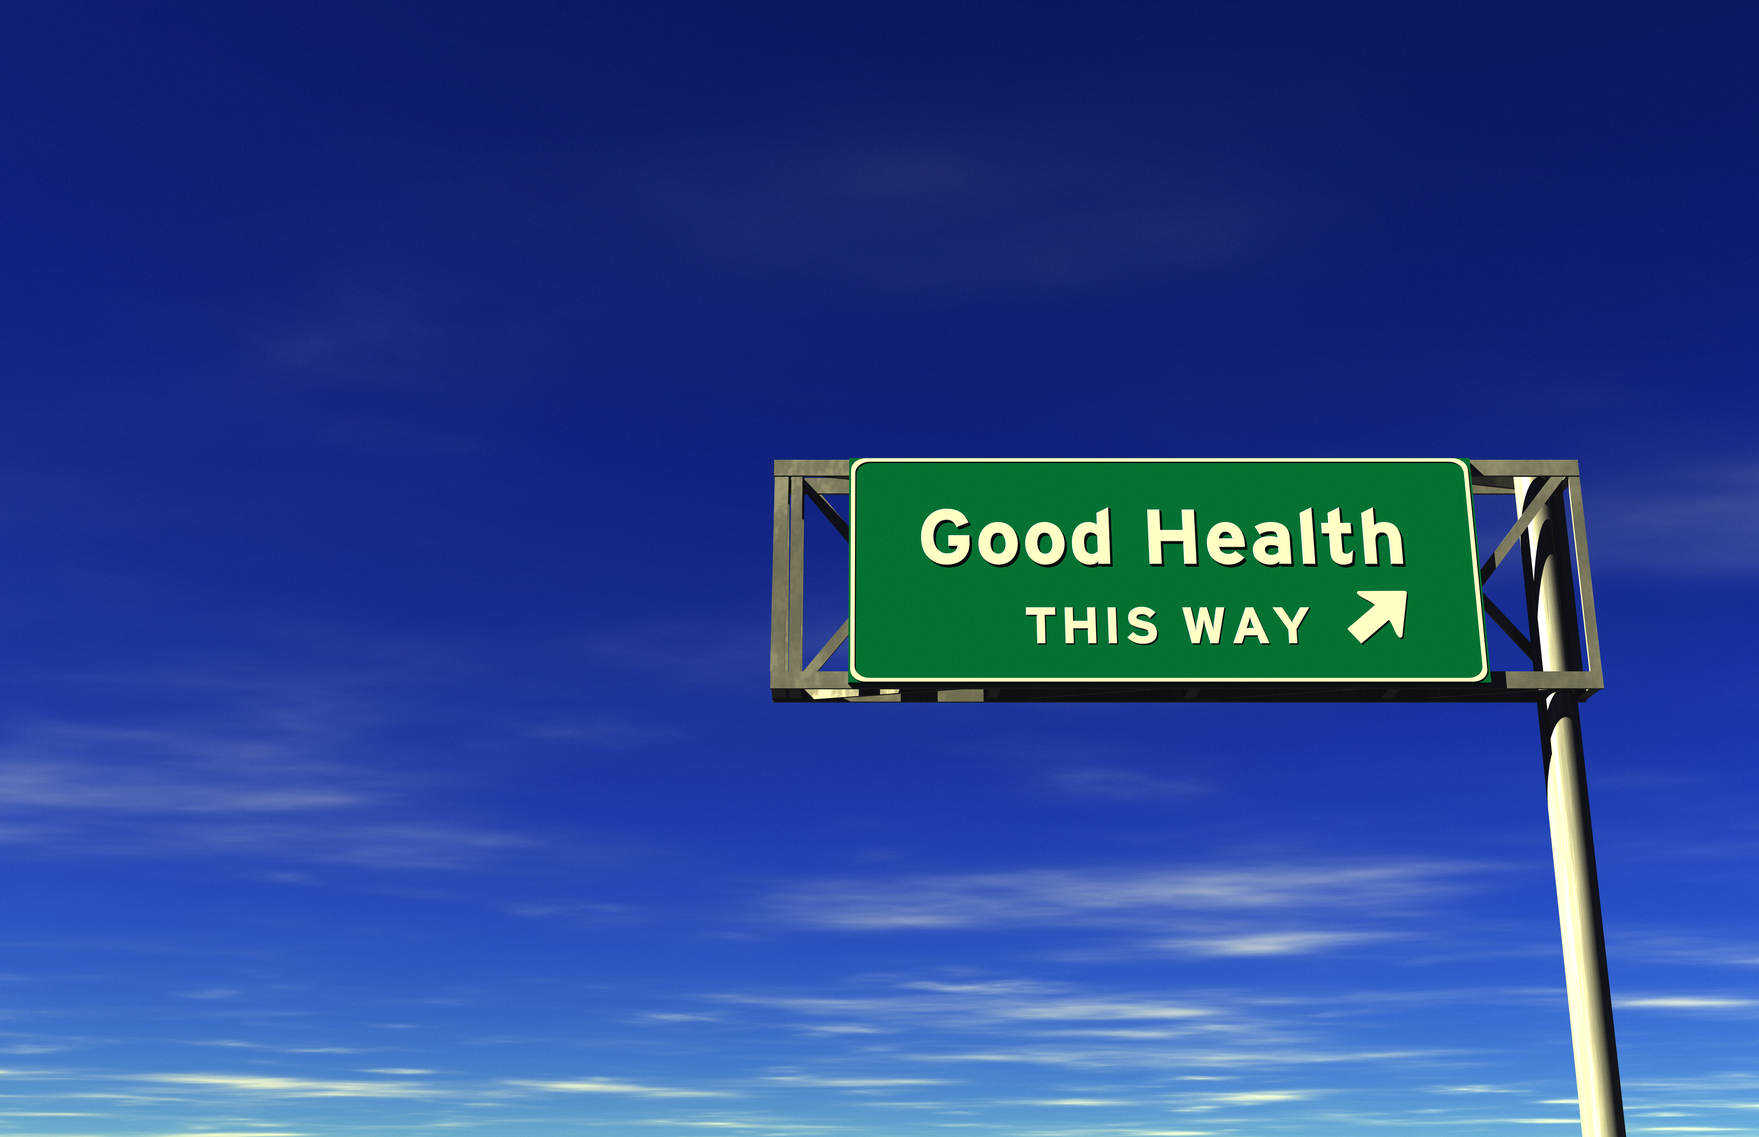 Good Health In Islam West London Dawah for good health for your reference